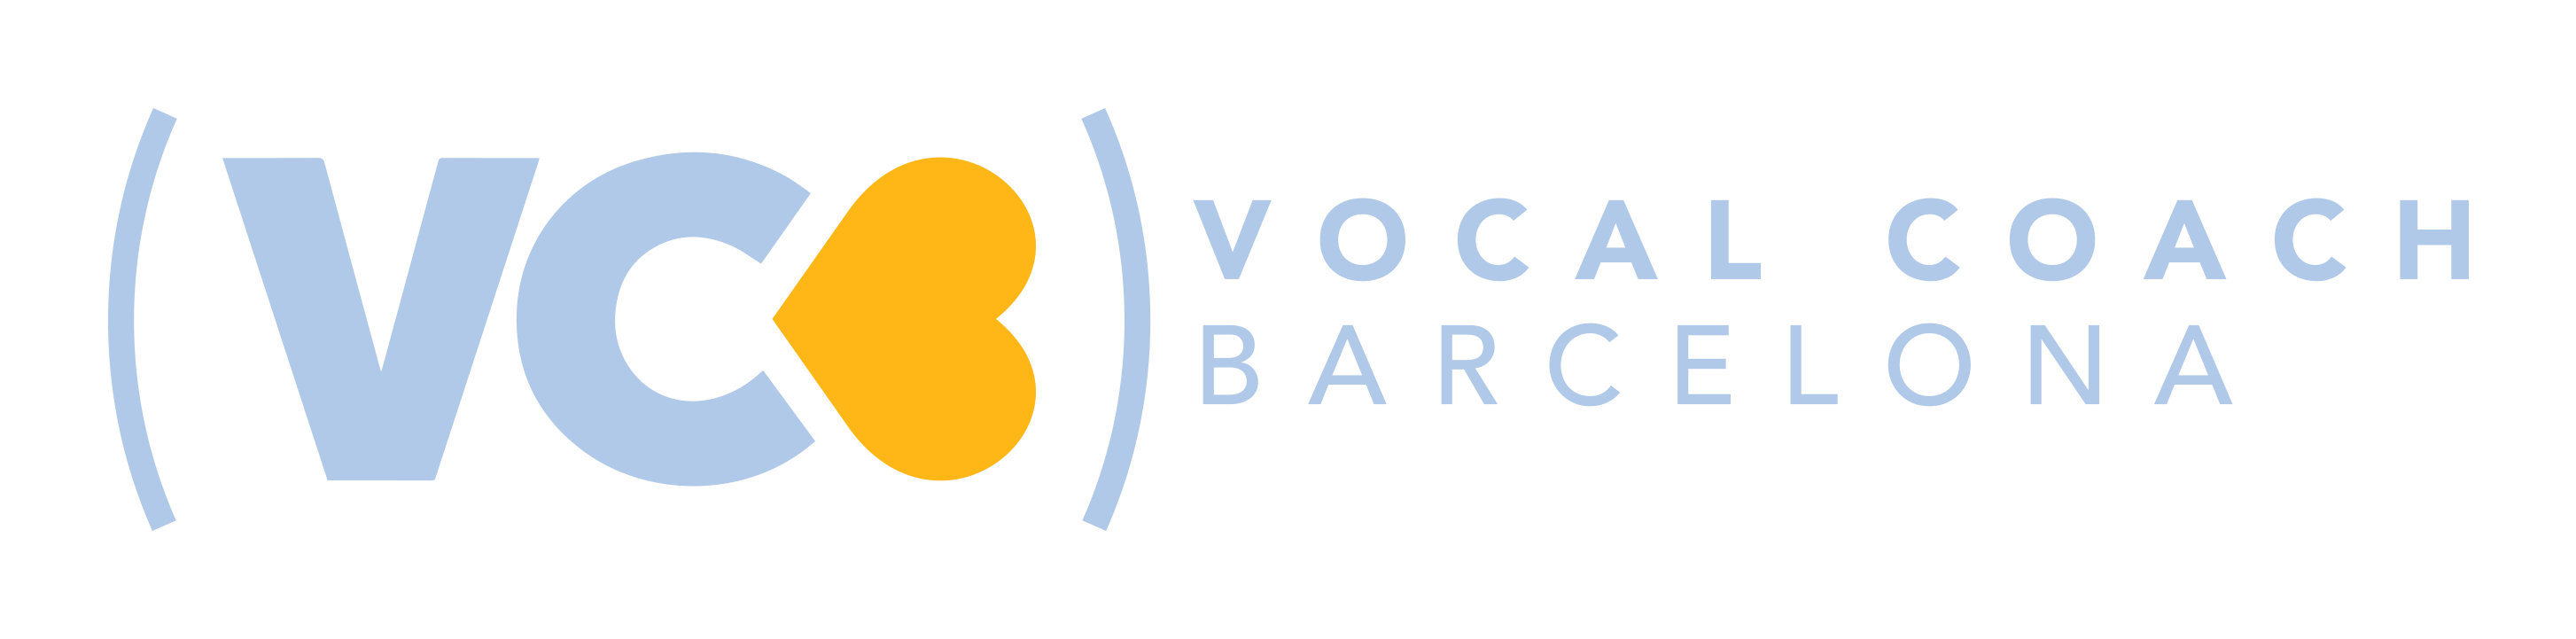 Vocal Coach Barcelona